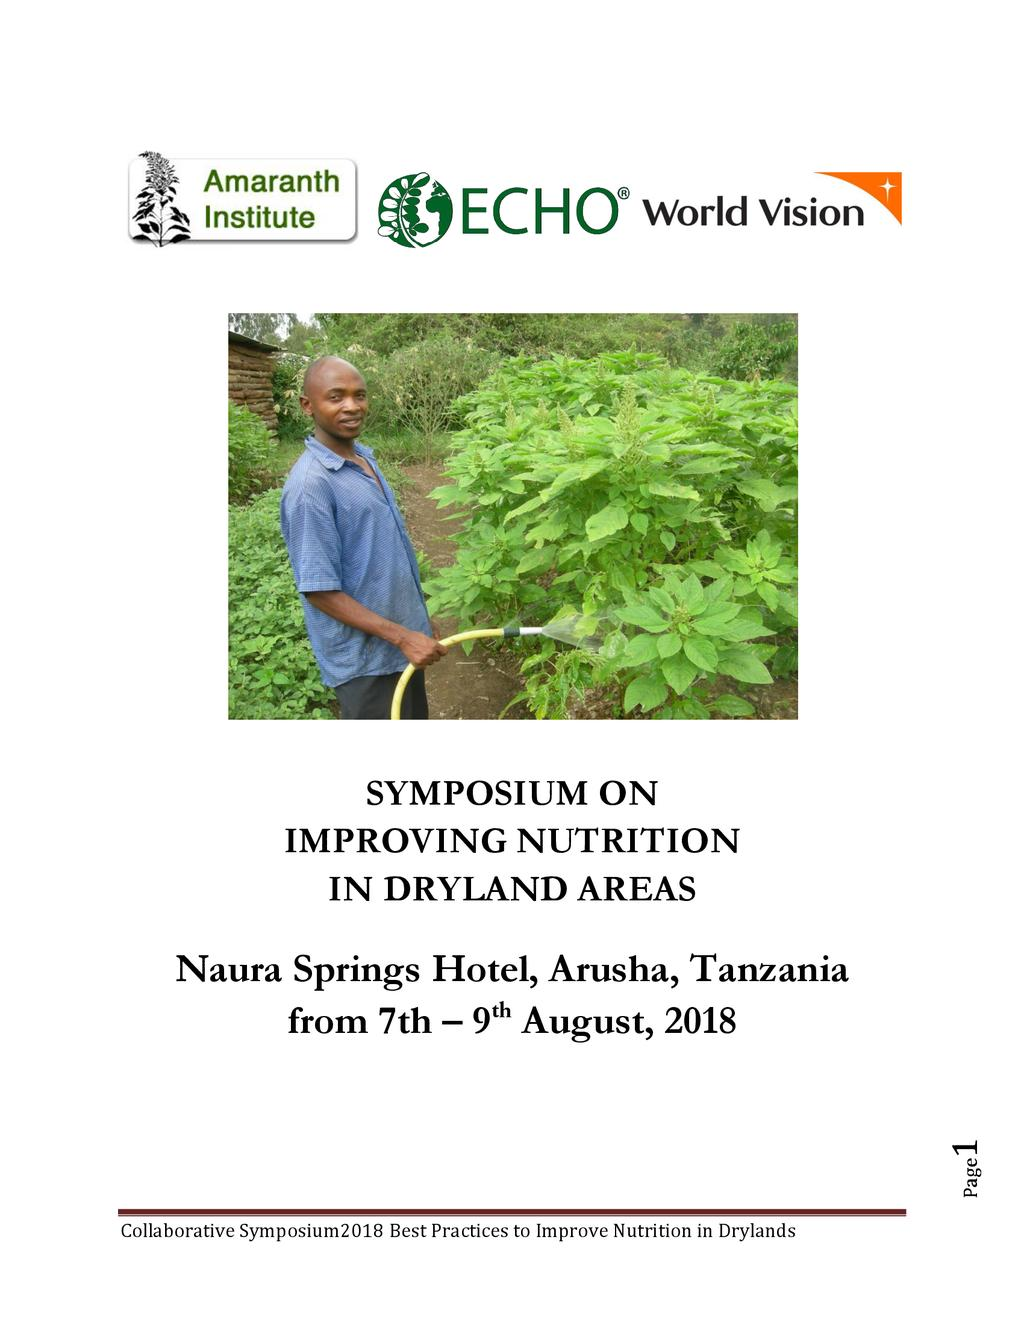 Symposium on Improving Nutrition in Dryland Areas